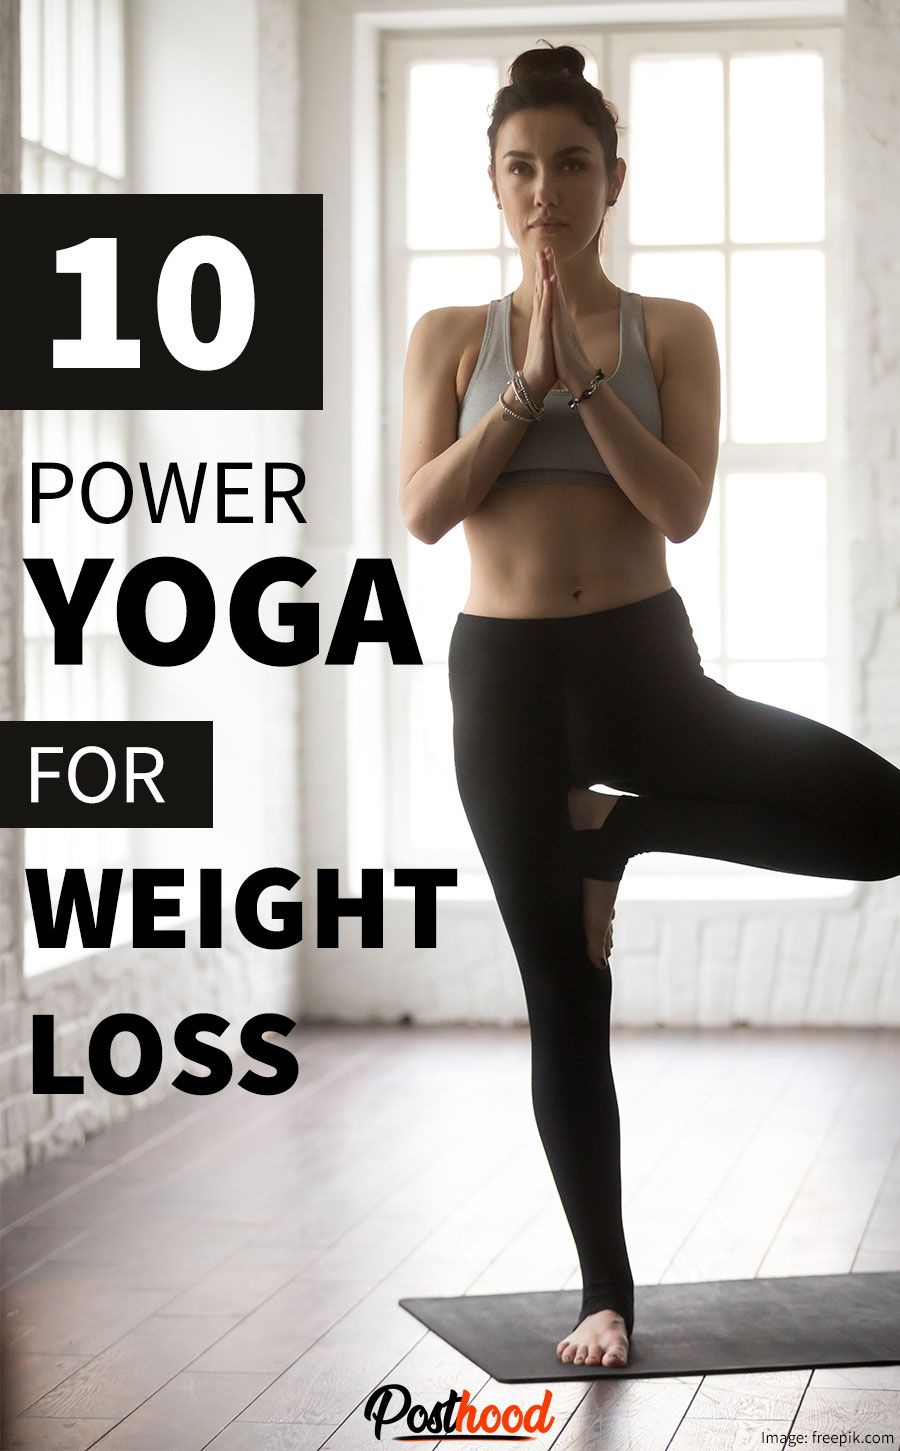 10 Best Power Yoga For Weight Loss Looking for the